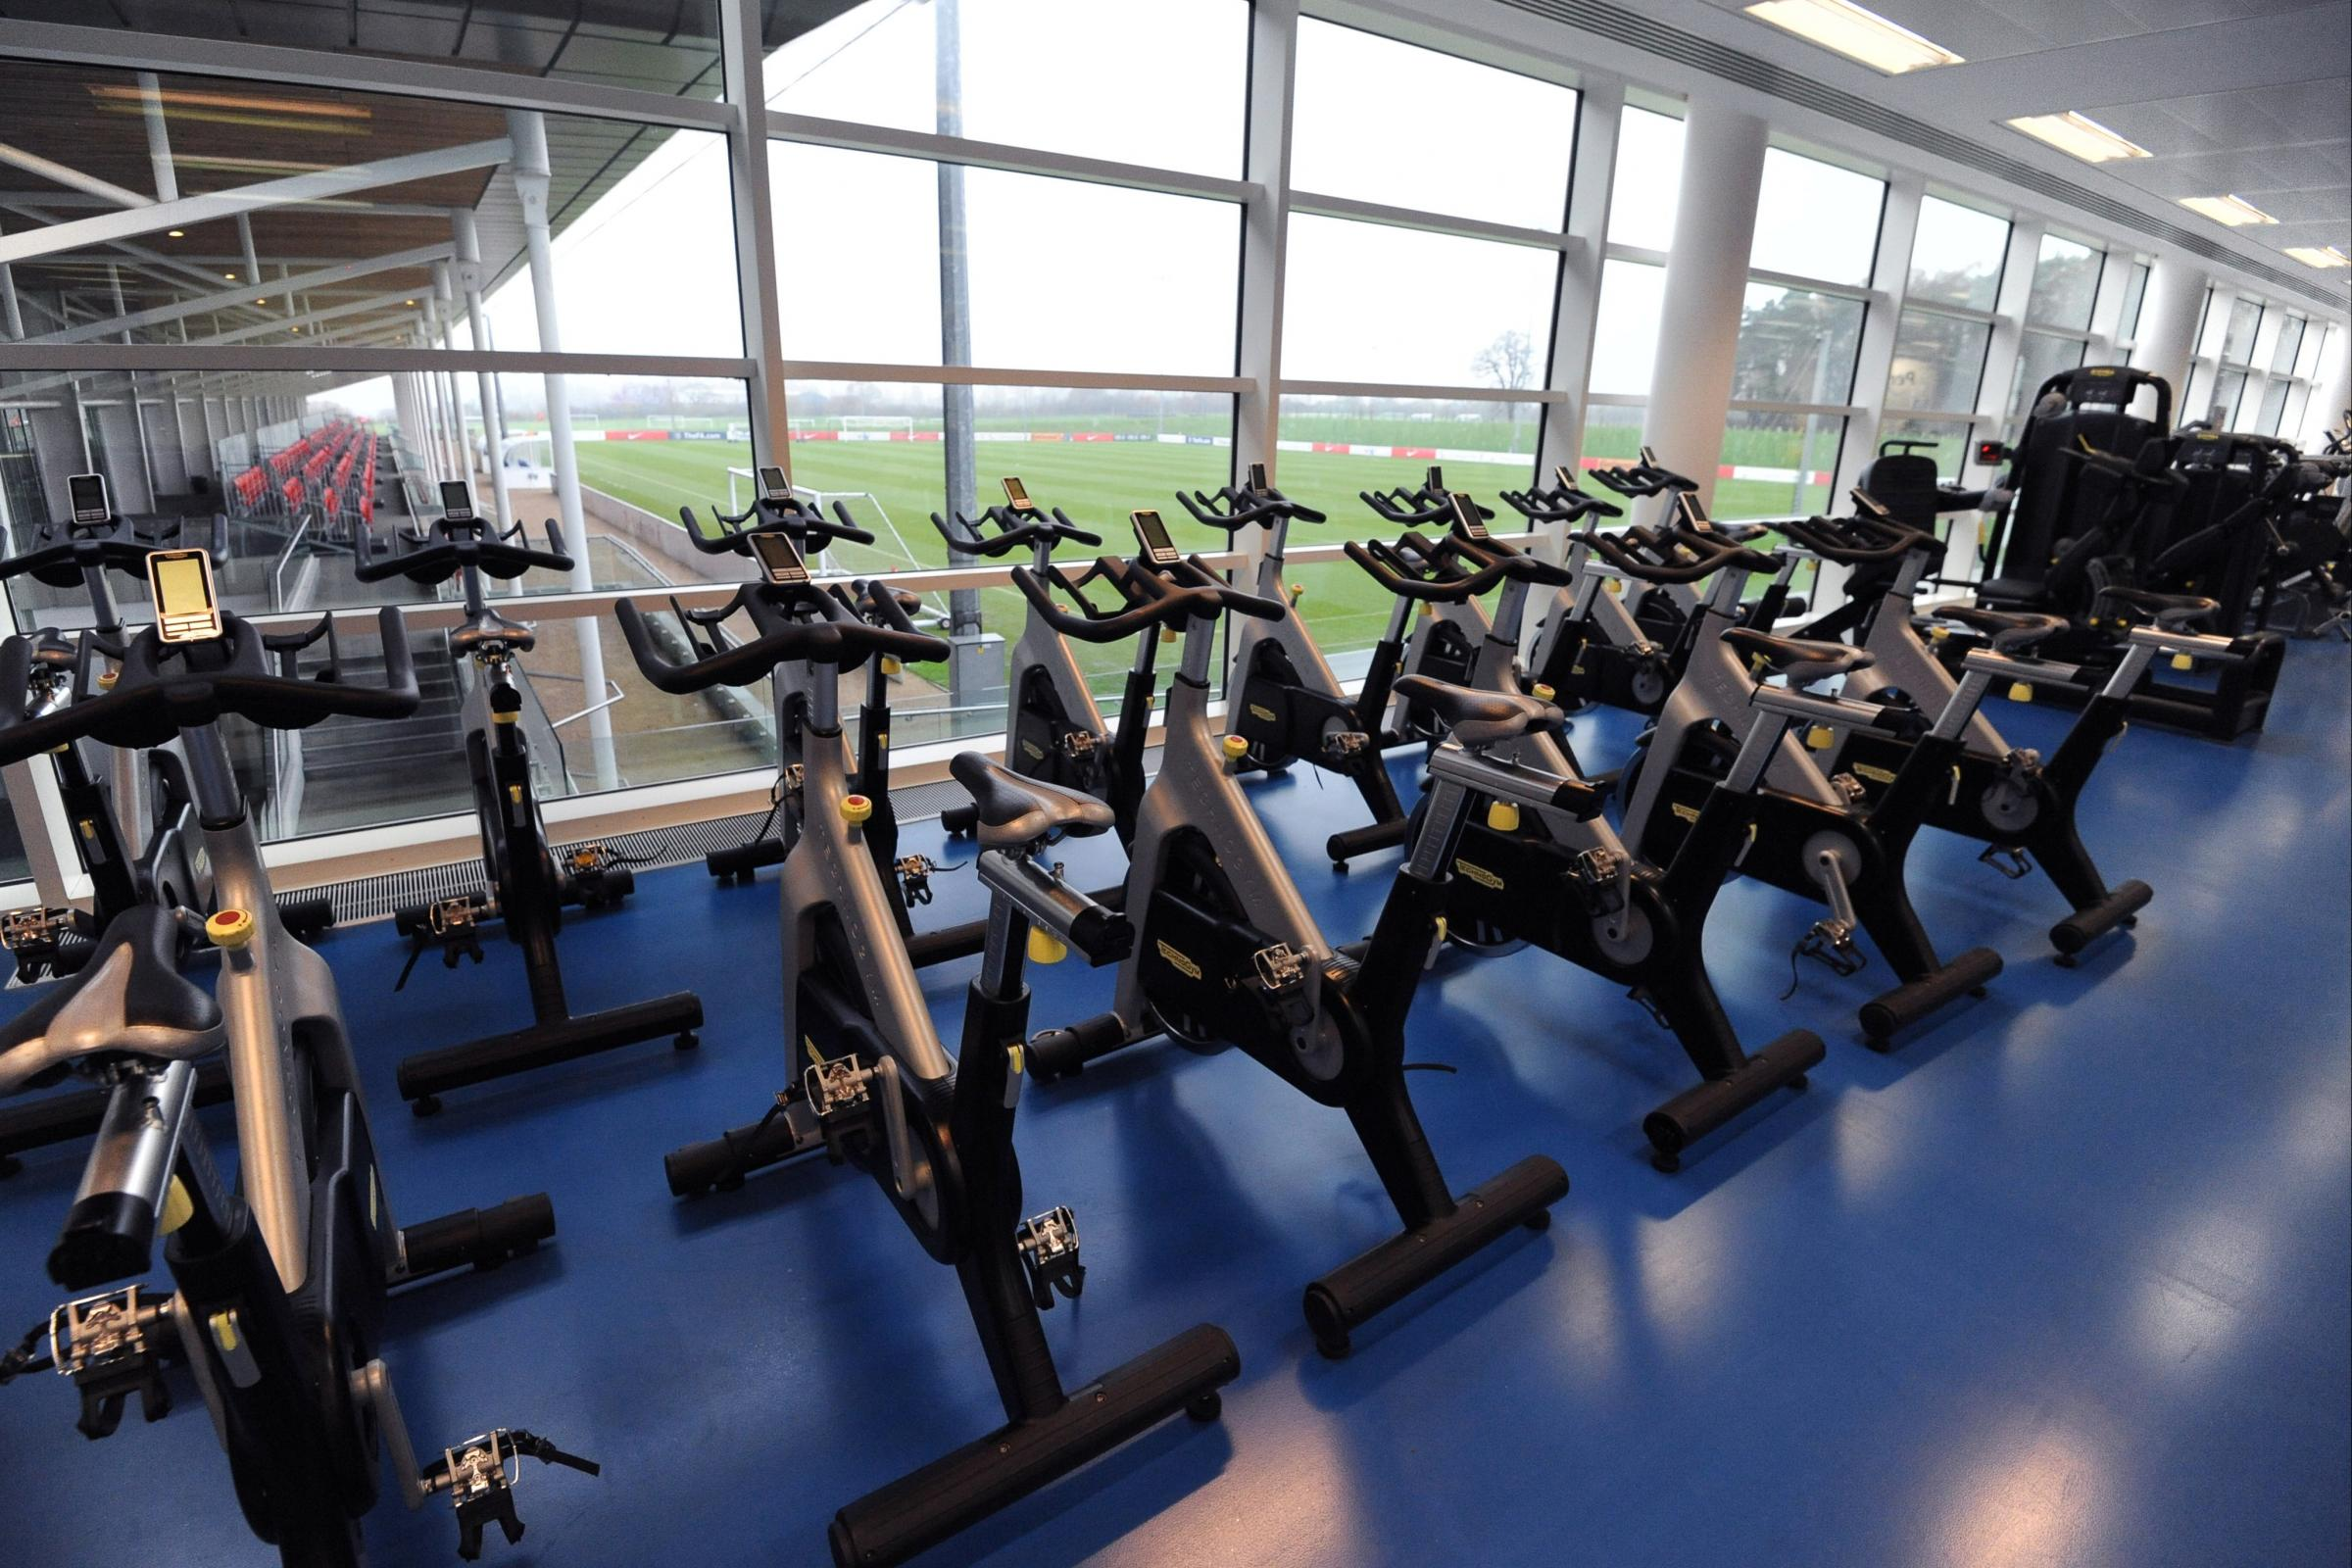 New 24 hour gym to open in Ayr